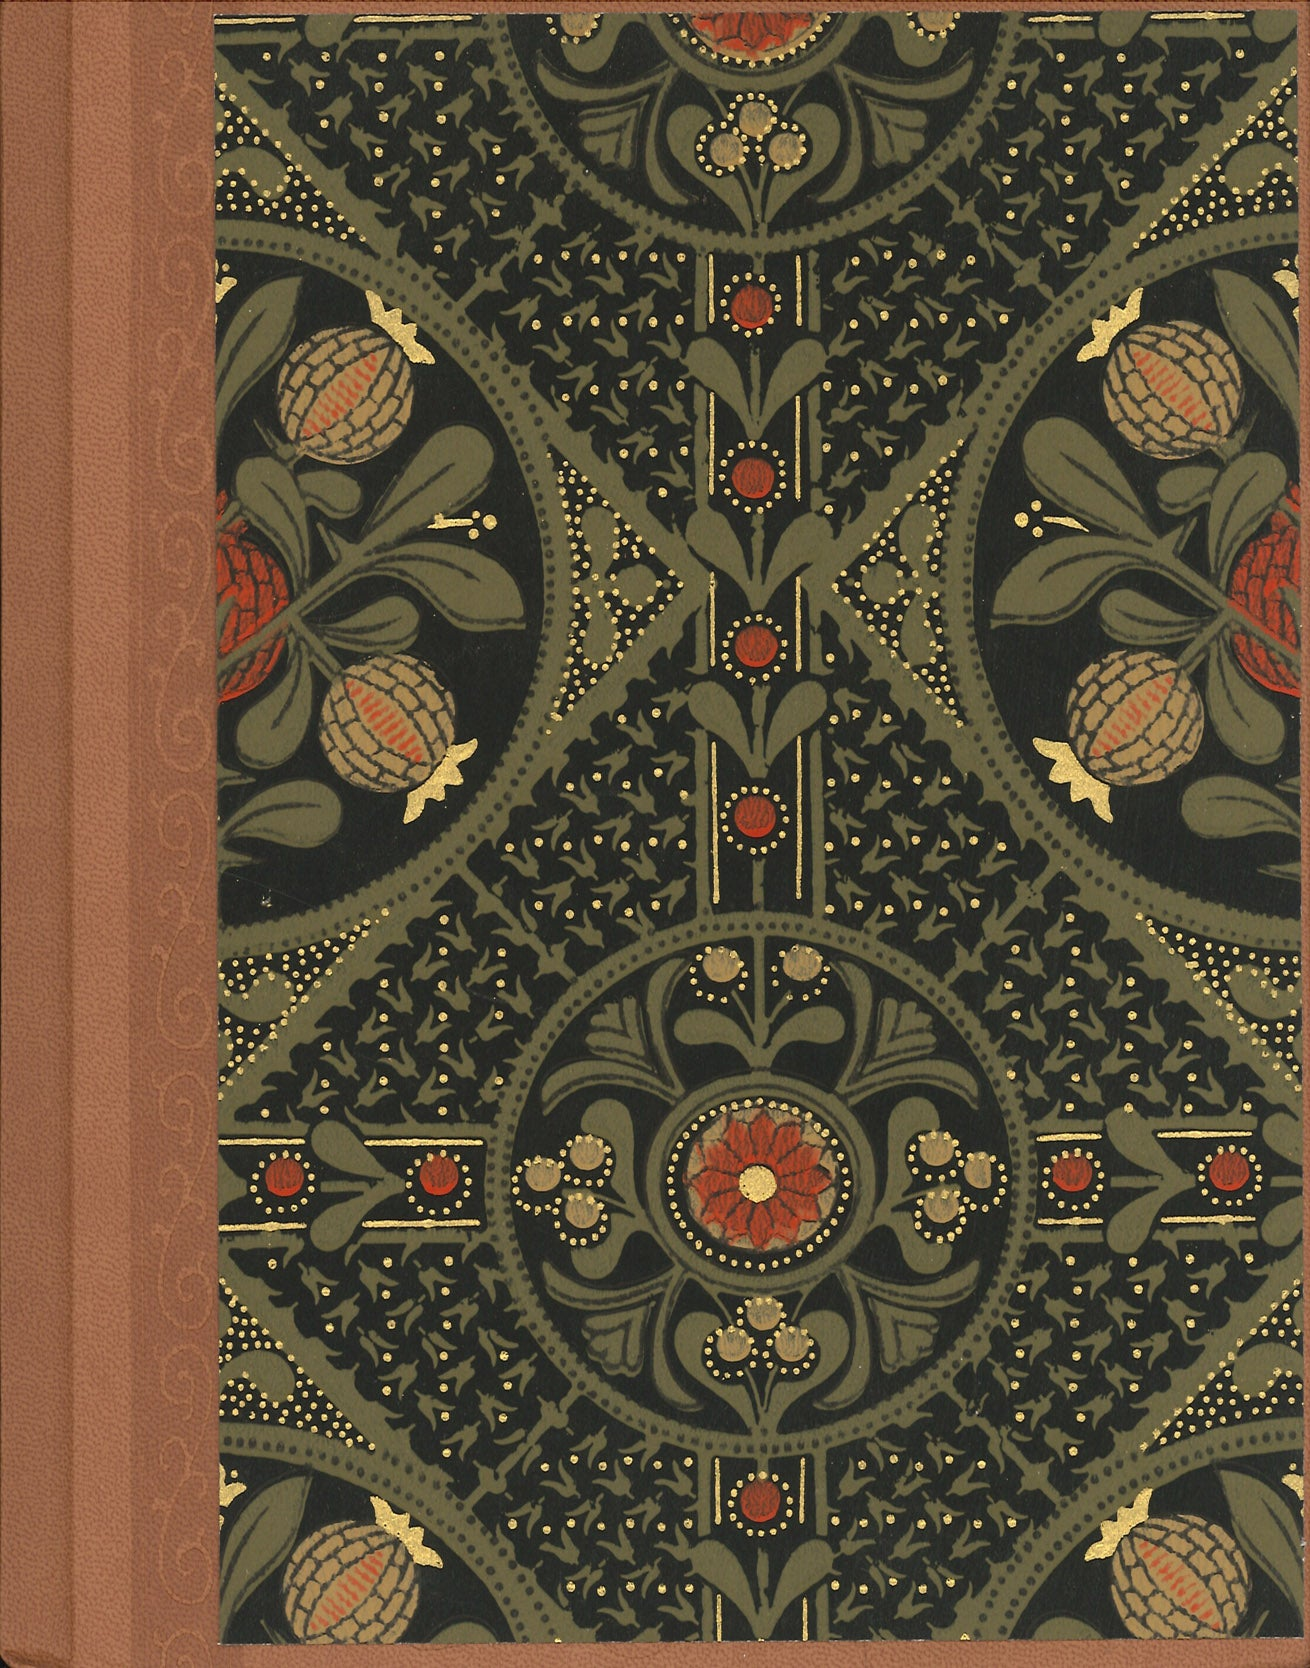 "Pomegranate Antique Wallpaper Journal - 7"" x 9"""